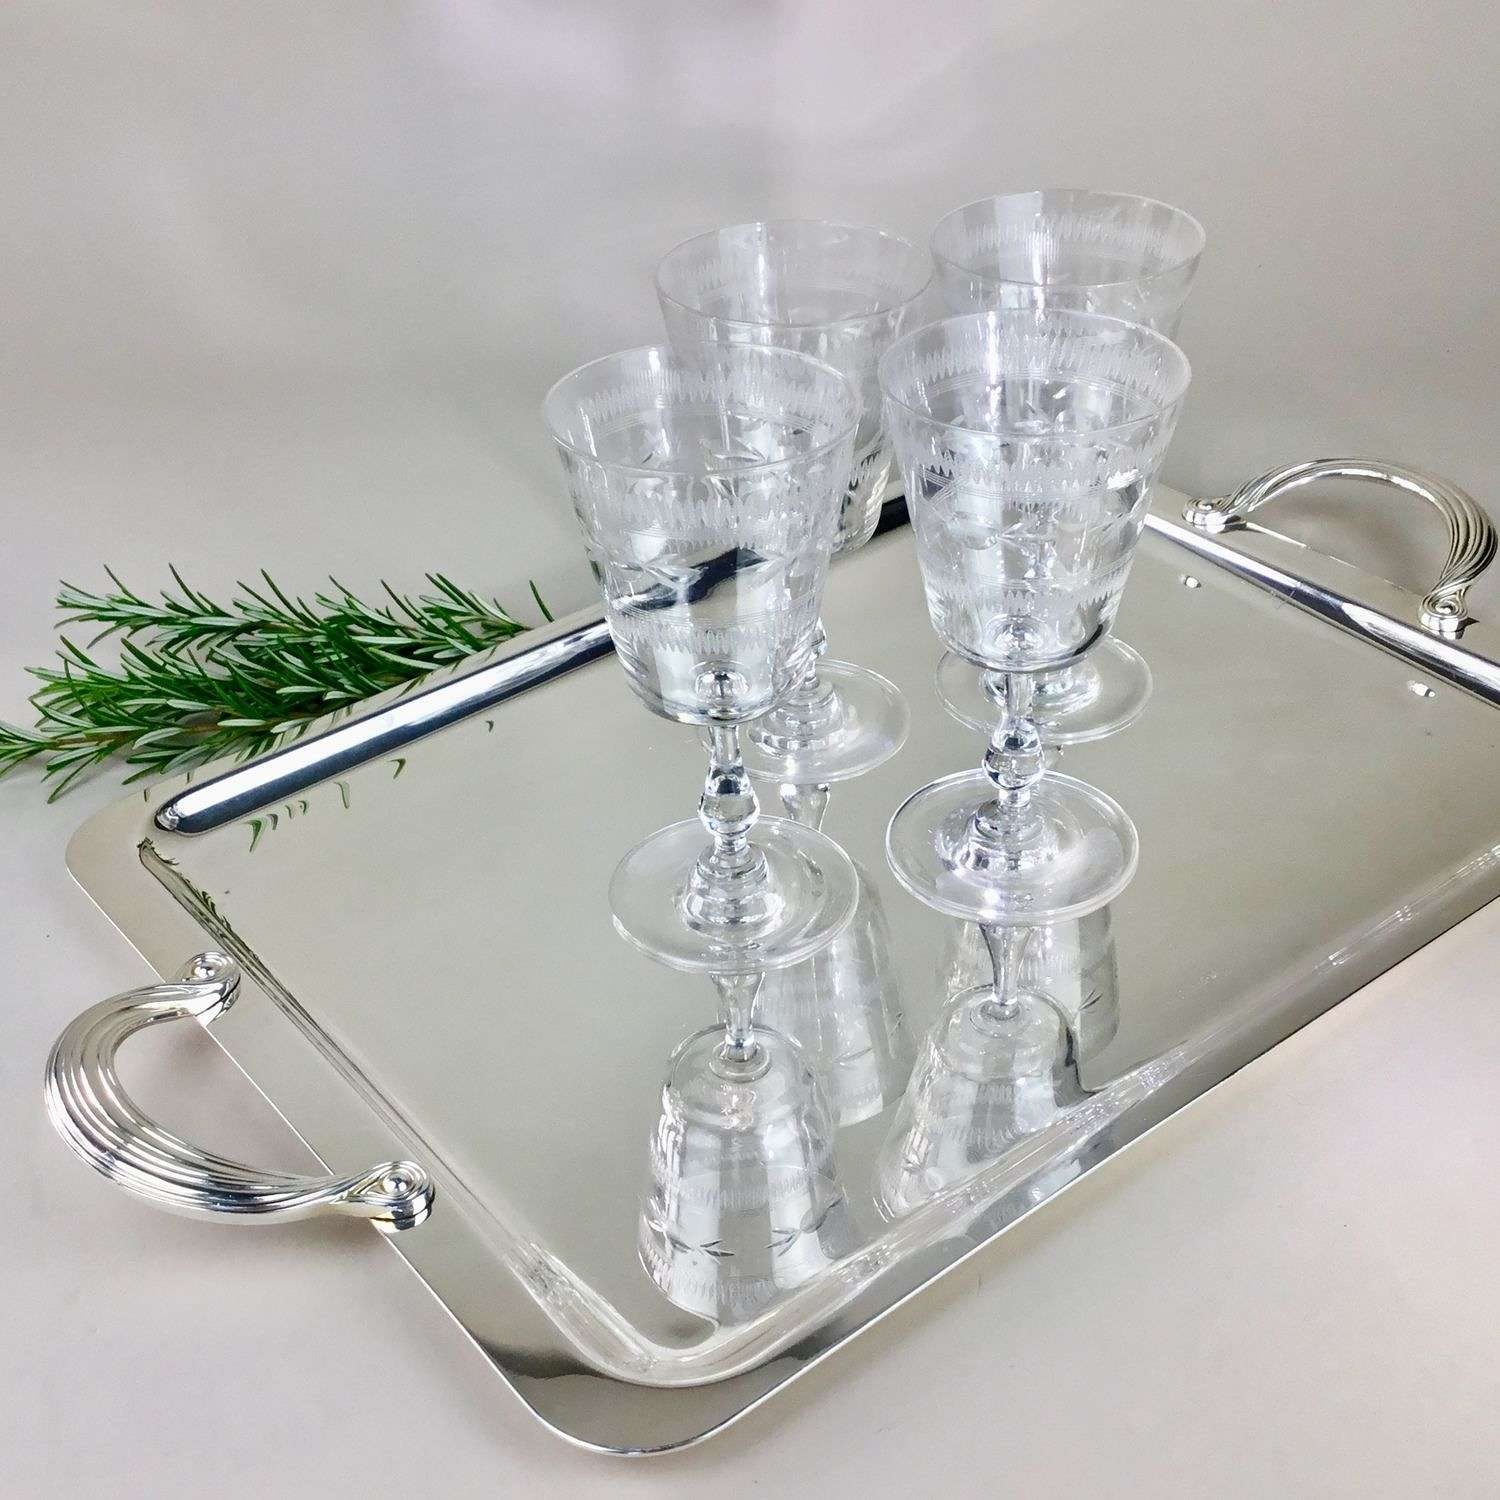 Exceptional quality silver plated drinks tray by Christofle